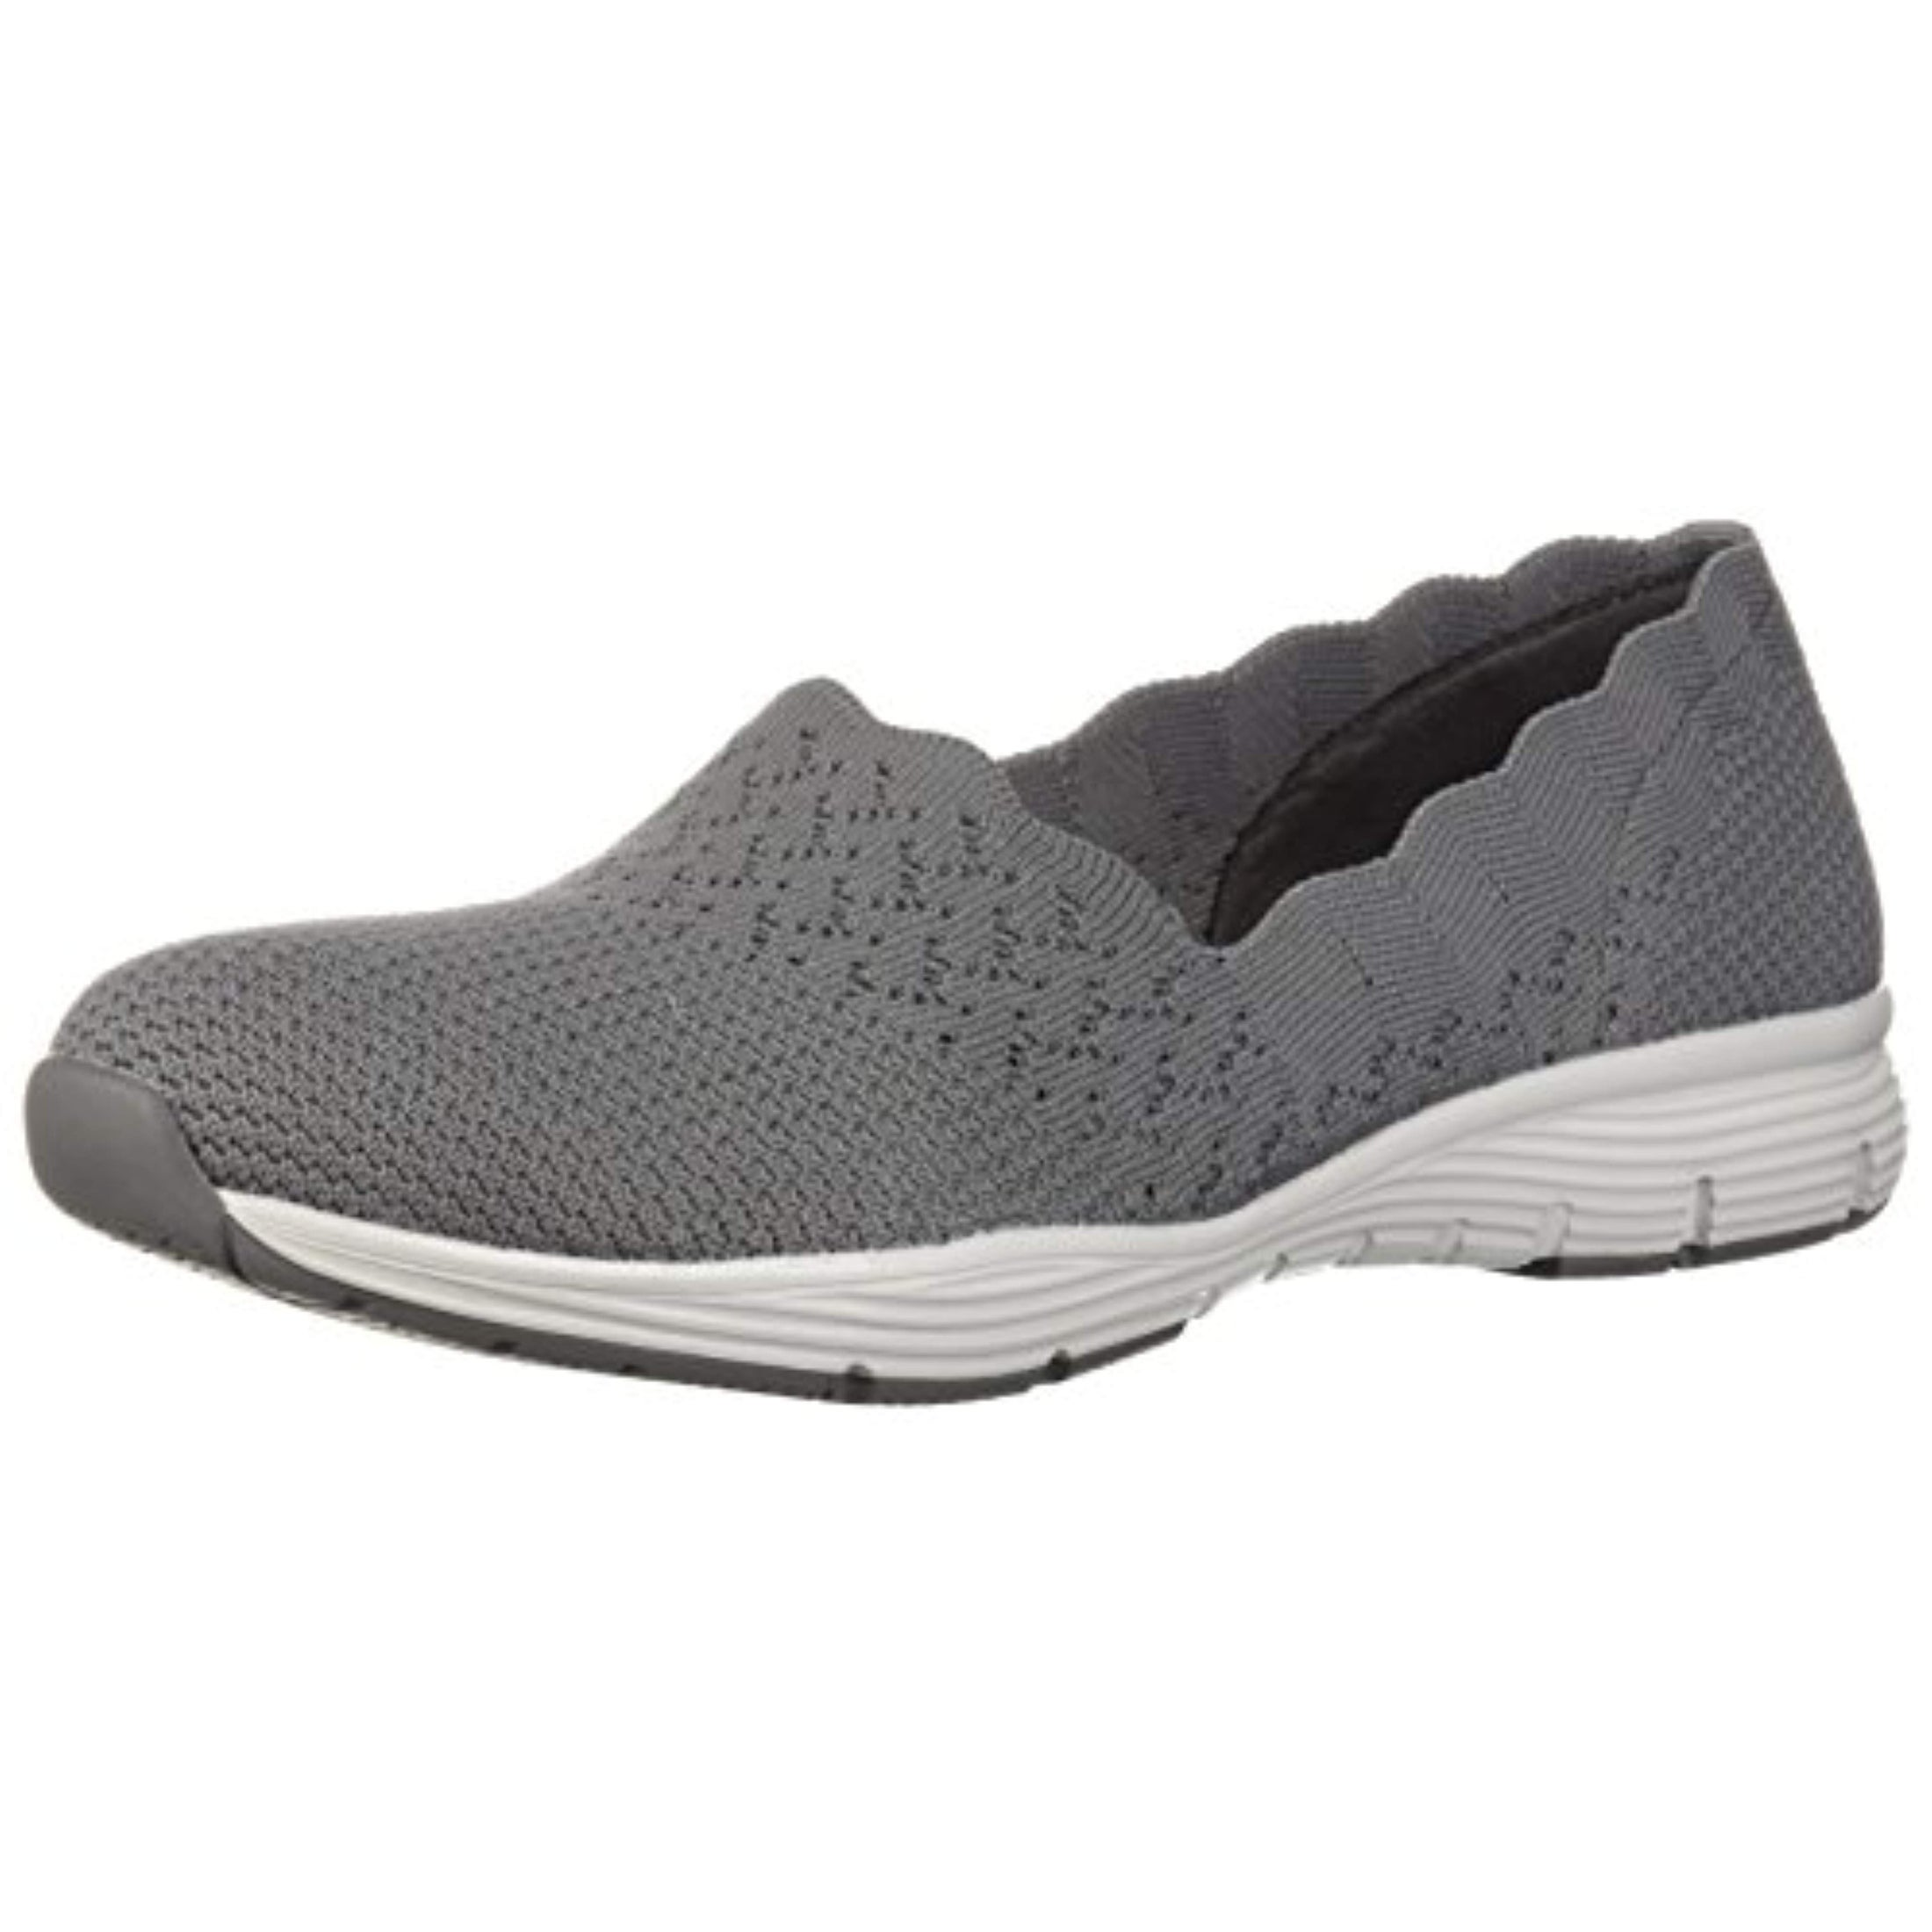 Skechers Women's Seager STAT Scalloped Collar, Engineered Skech Knit Slip On Classic Fit Loafer, Gray, 6.5 M US